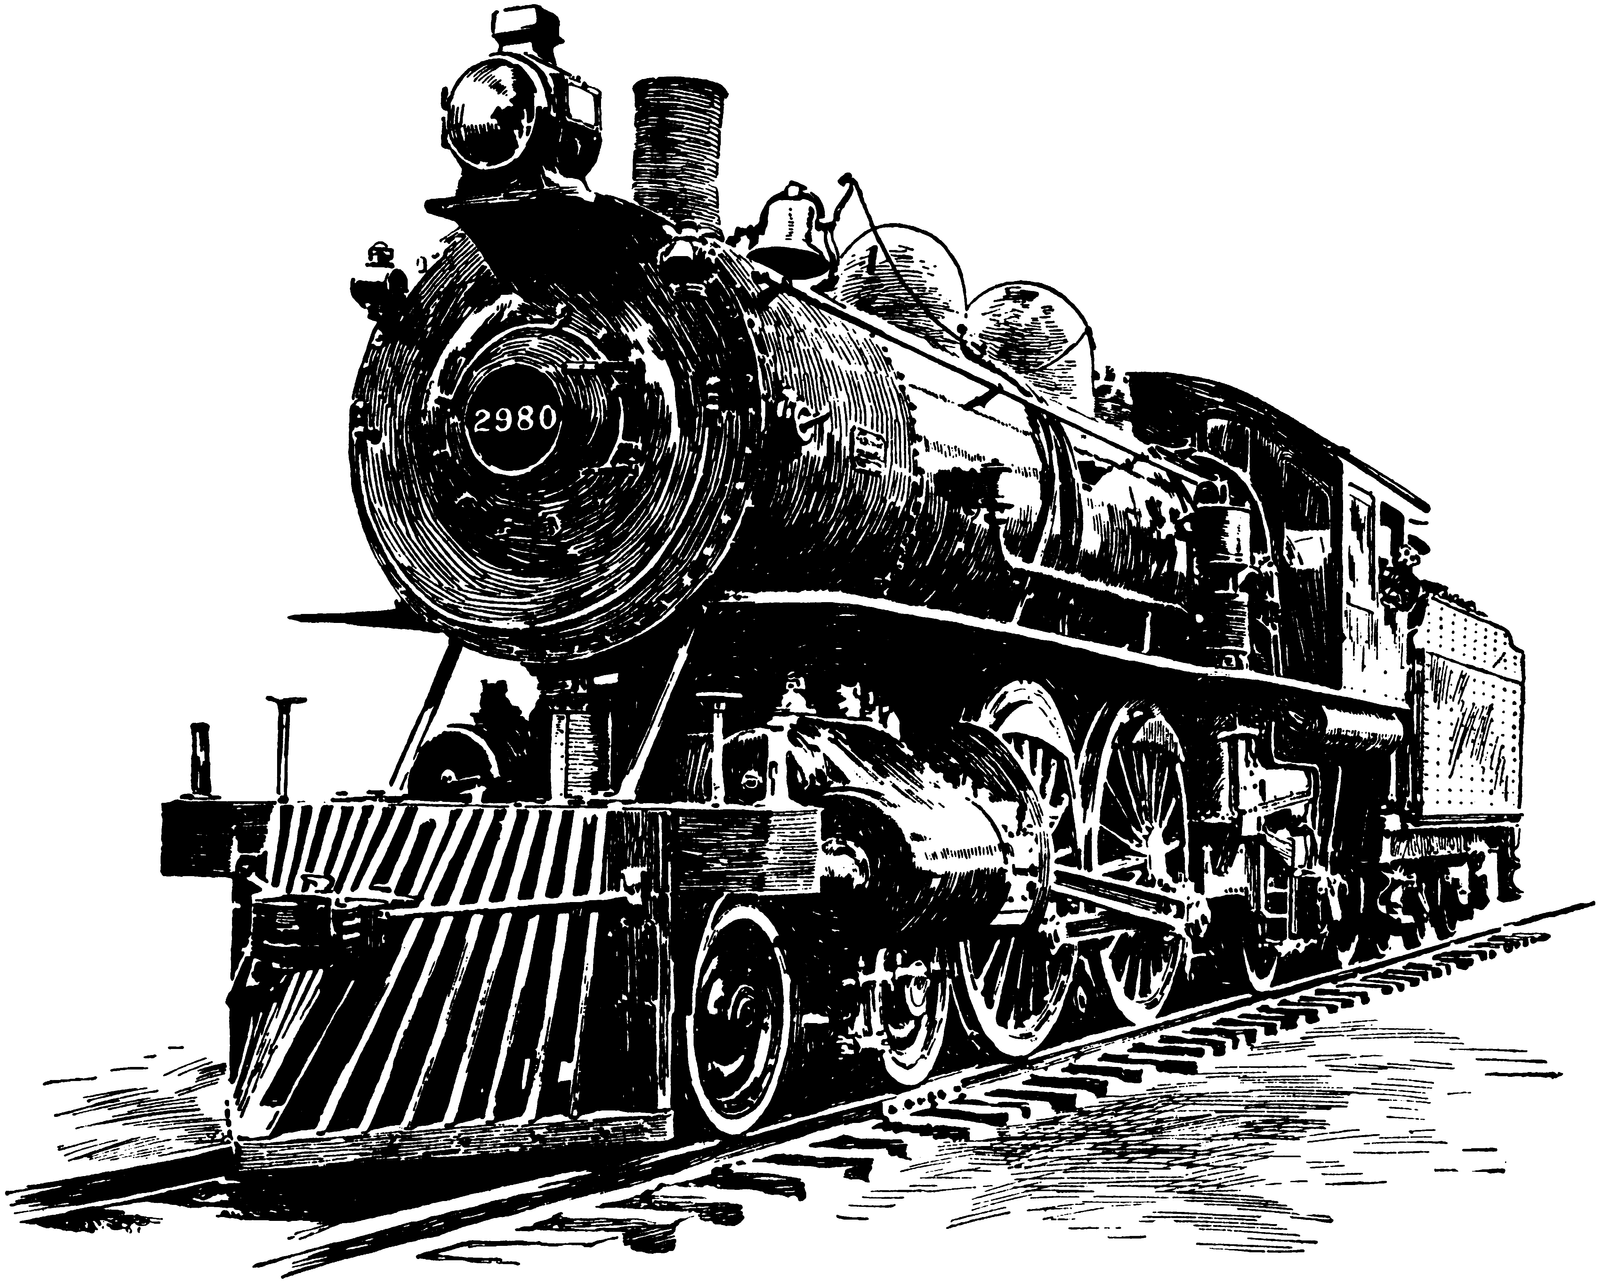 Line Art Train : Steampunk steam locomotive line art stock by ihcoyc on